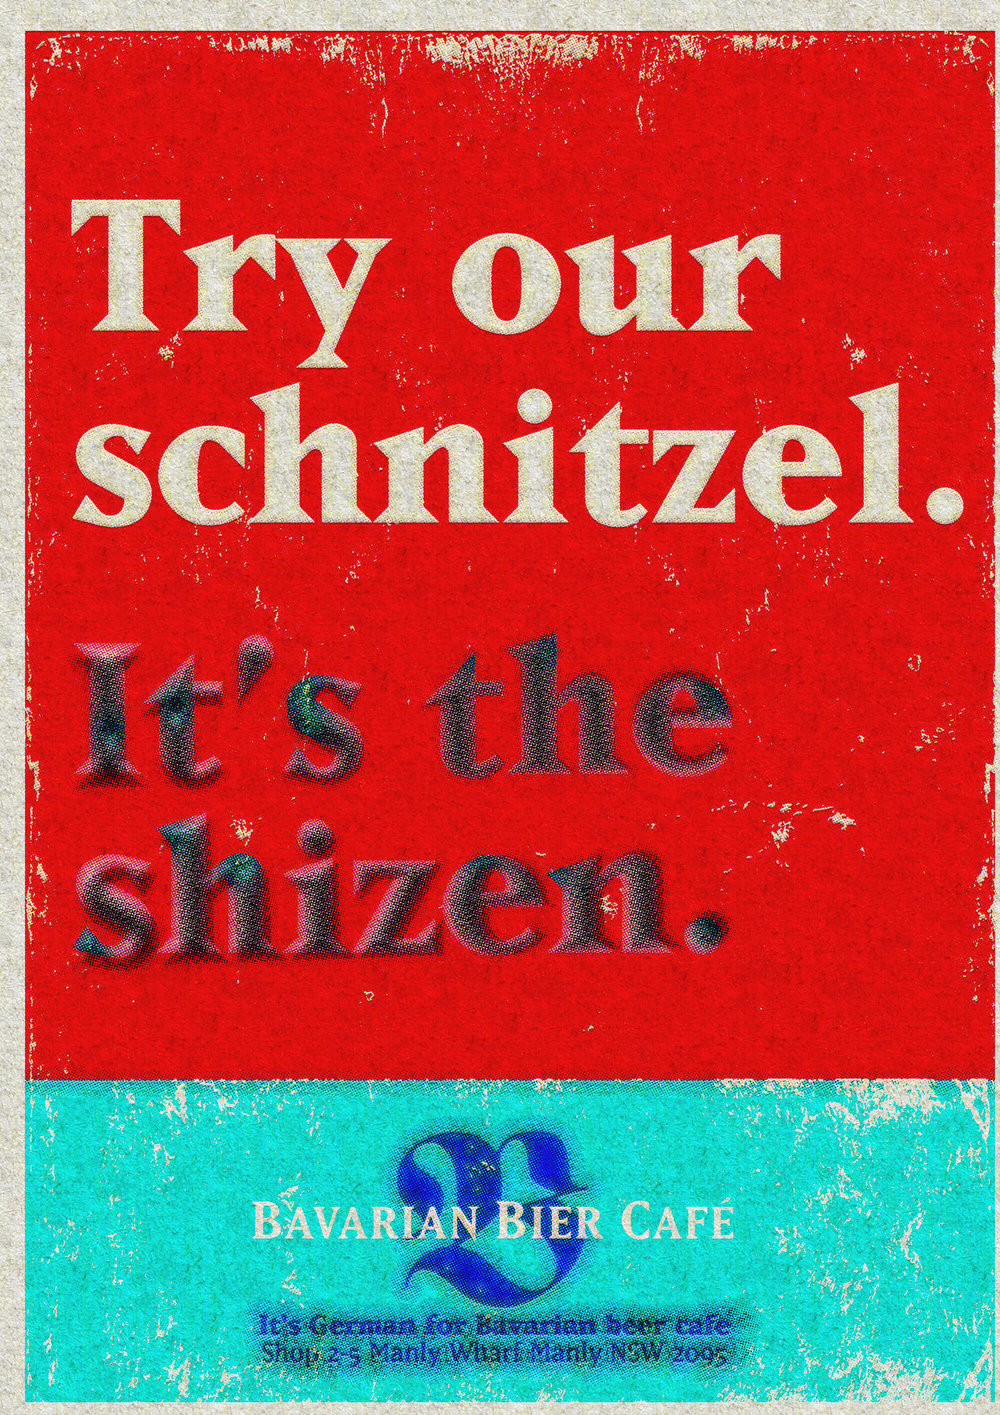 Bavarian Bier Café: print Ad. Germany. Try our schnitzel. It's the sheizen.